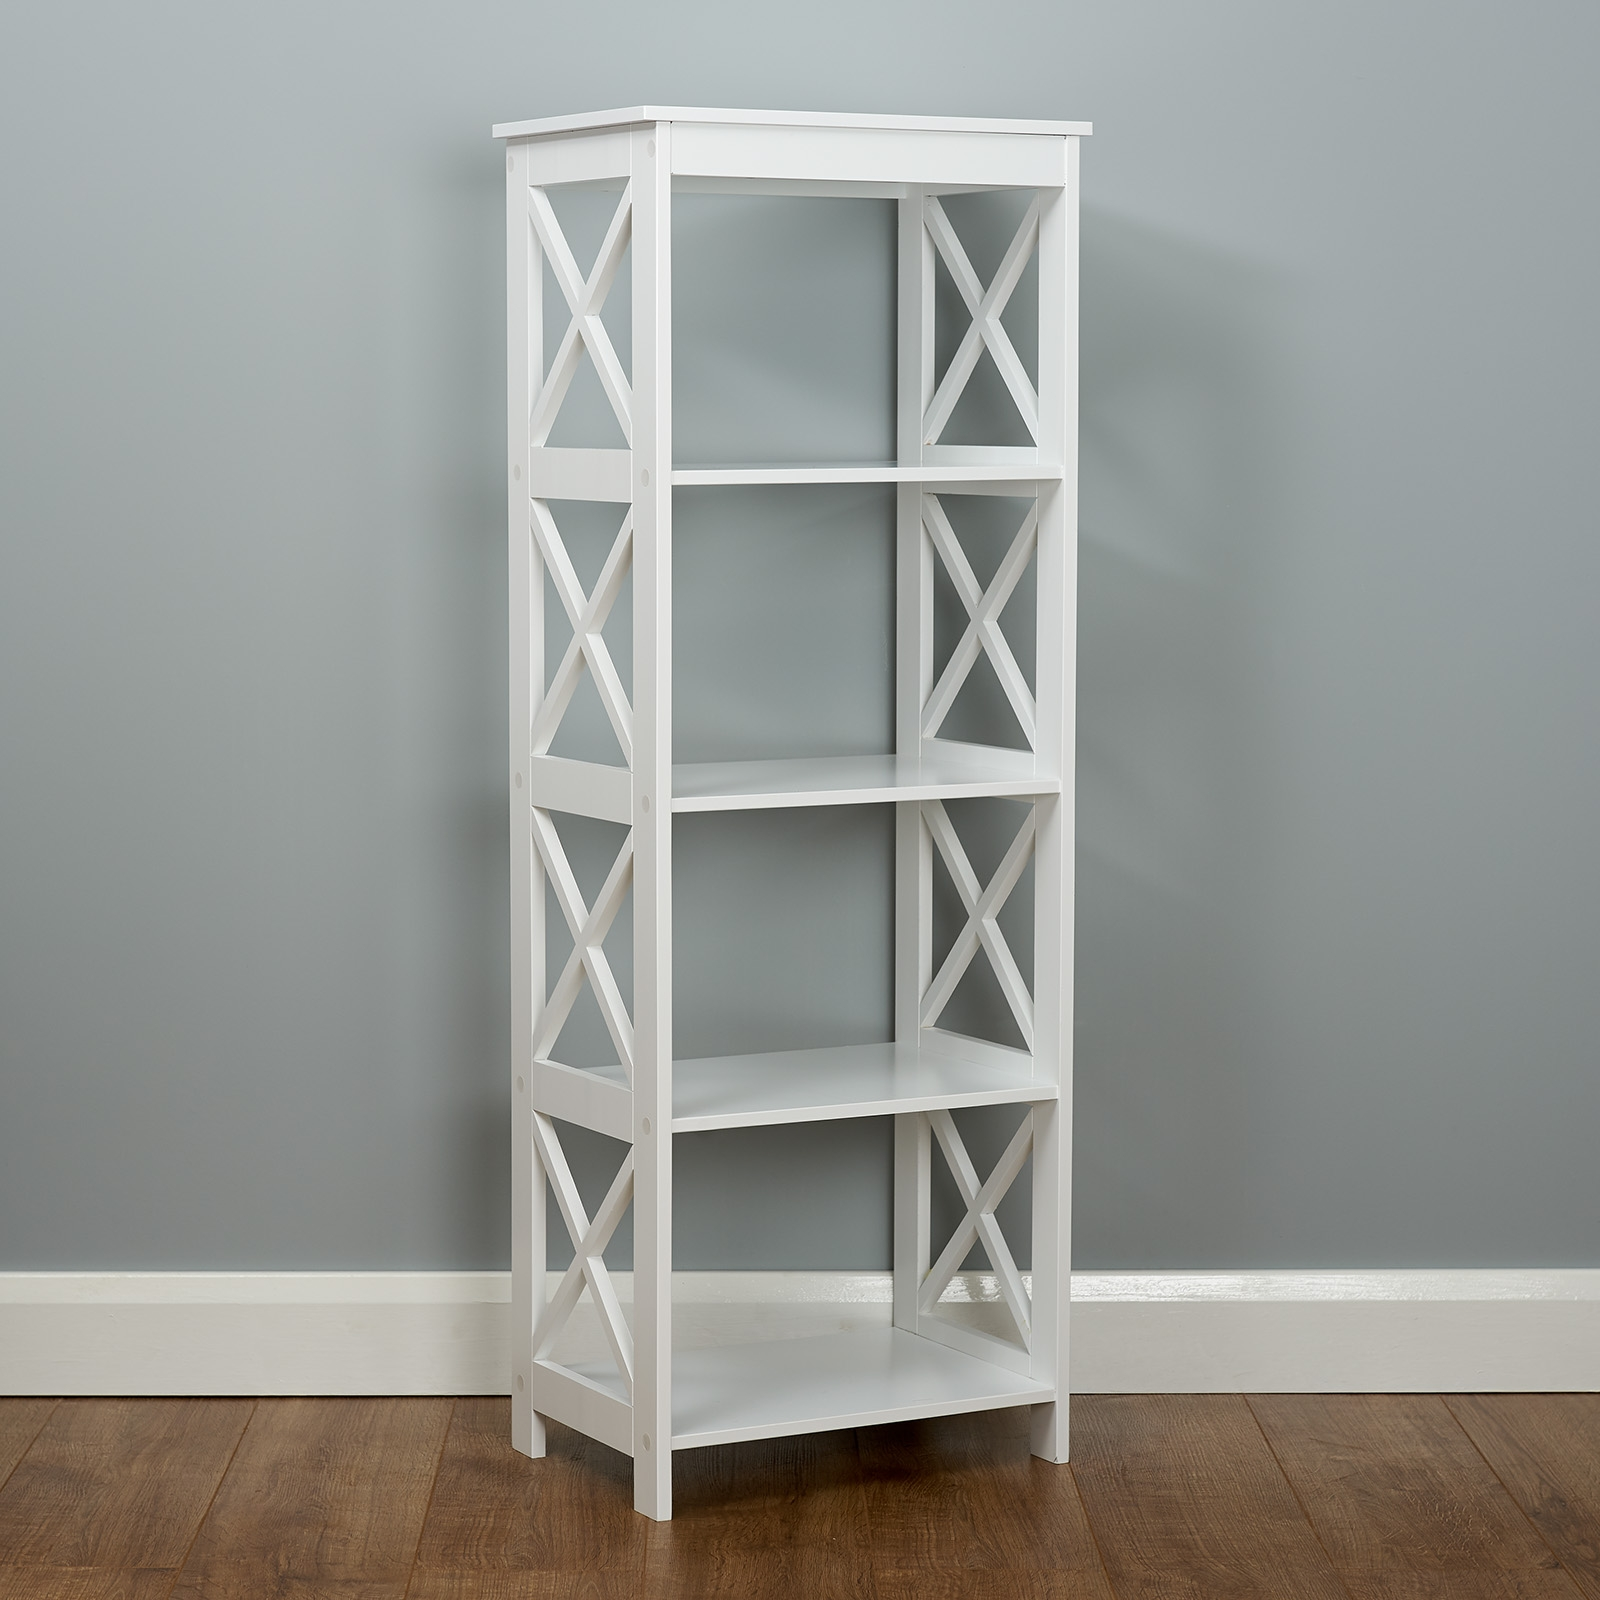 modern white cross cut out bookcase standing in a grey painted room with wooden flooring